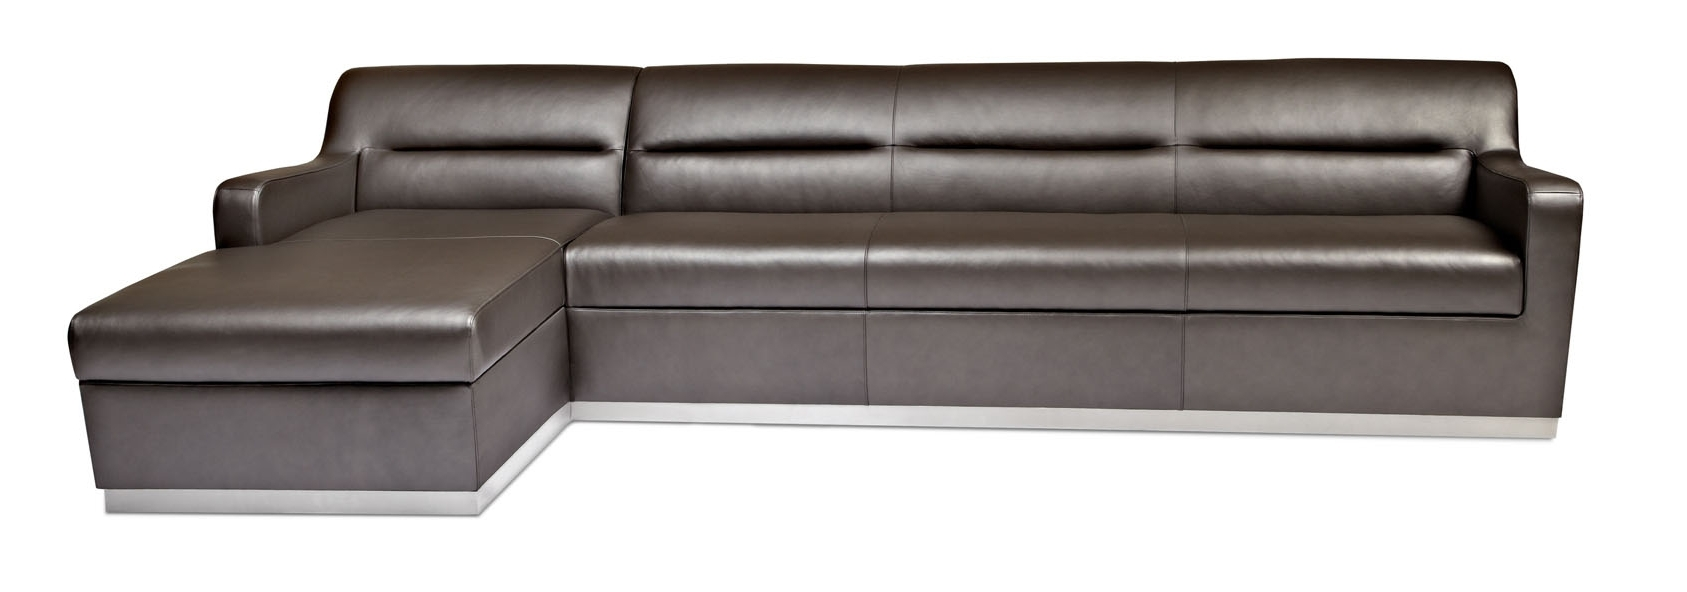 Niagara Sectional Sofas In Most Recently Released American Leather Niagara Sectional Sofa (View 5 of 20)